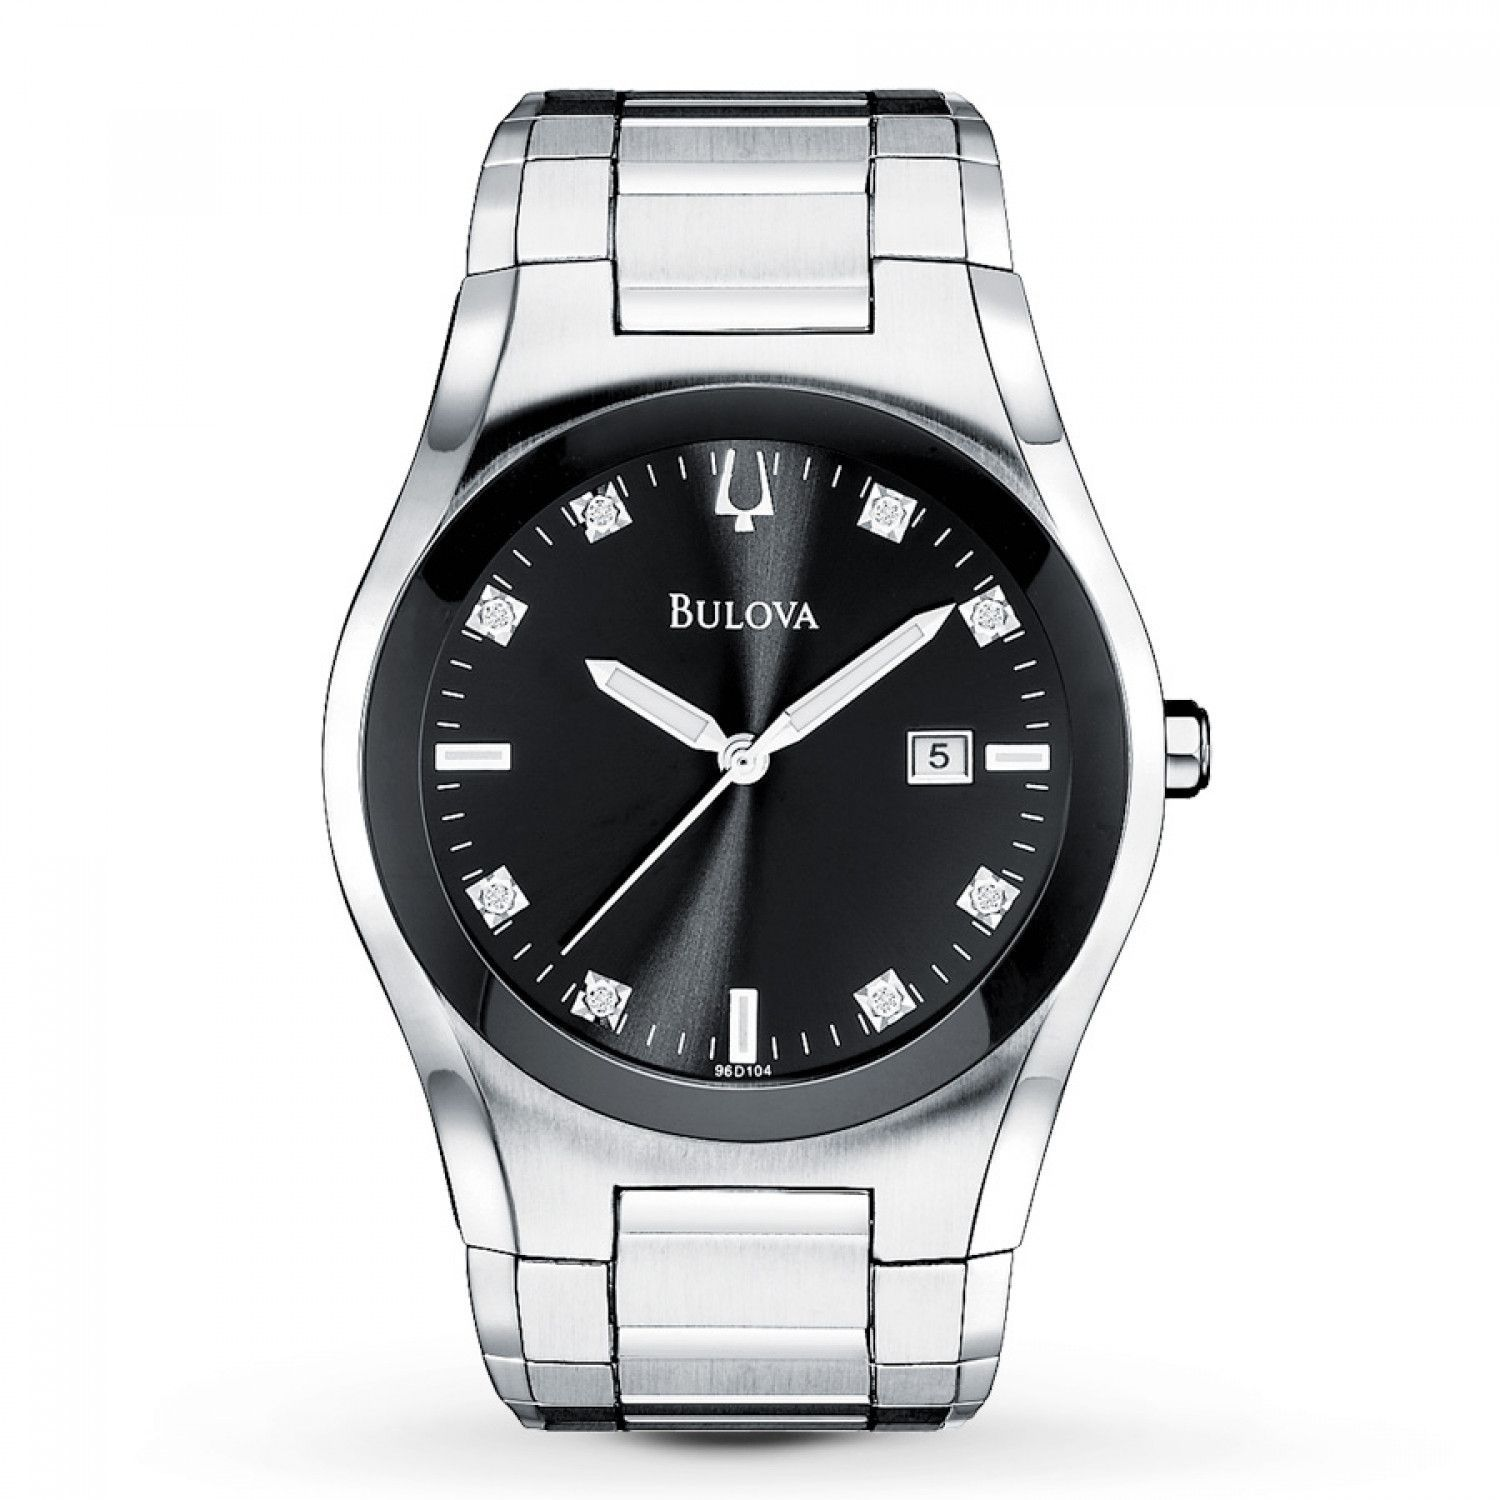 bulova 96d104 mens watch 8 diamonds on black dial silver stainless bulova 96d104 mens watch 8 diamonds on black dial silver stainless steel band